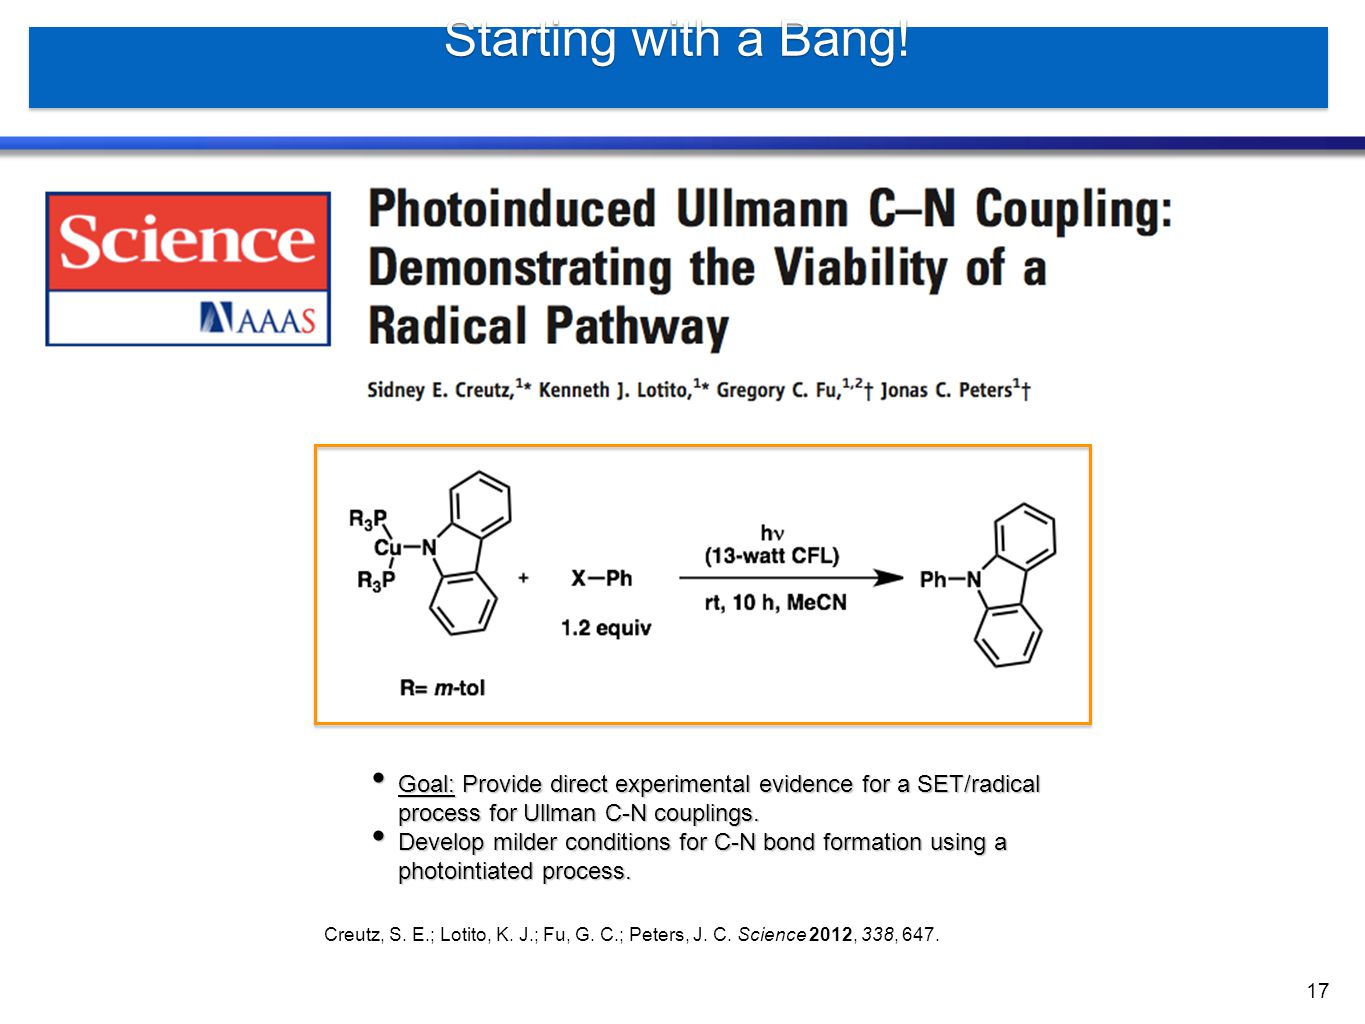 Starting with a Bang! Goal: Provide direct experimental evidence for a SET/radical process for Ullman C-N couplings.